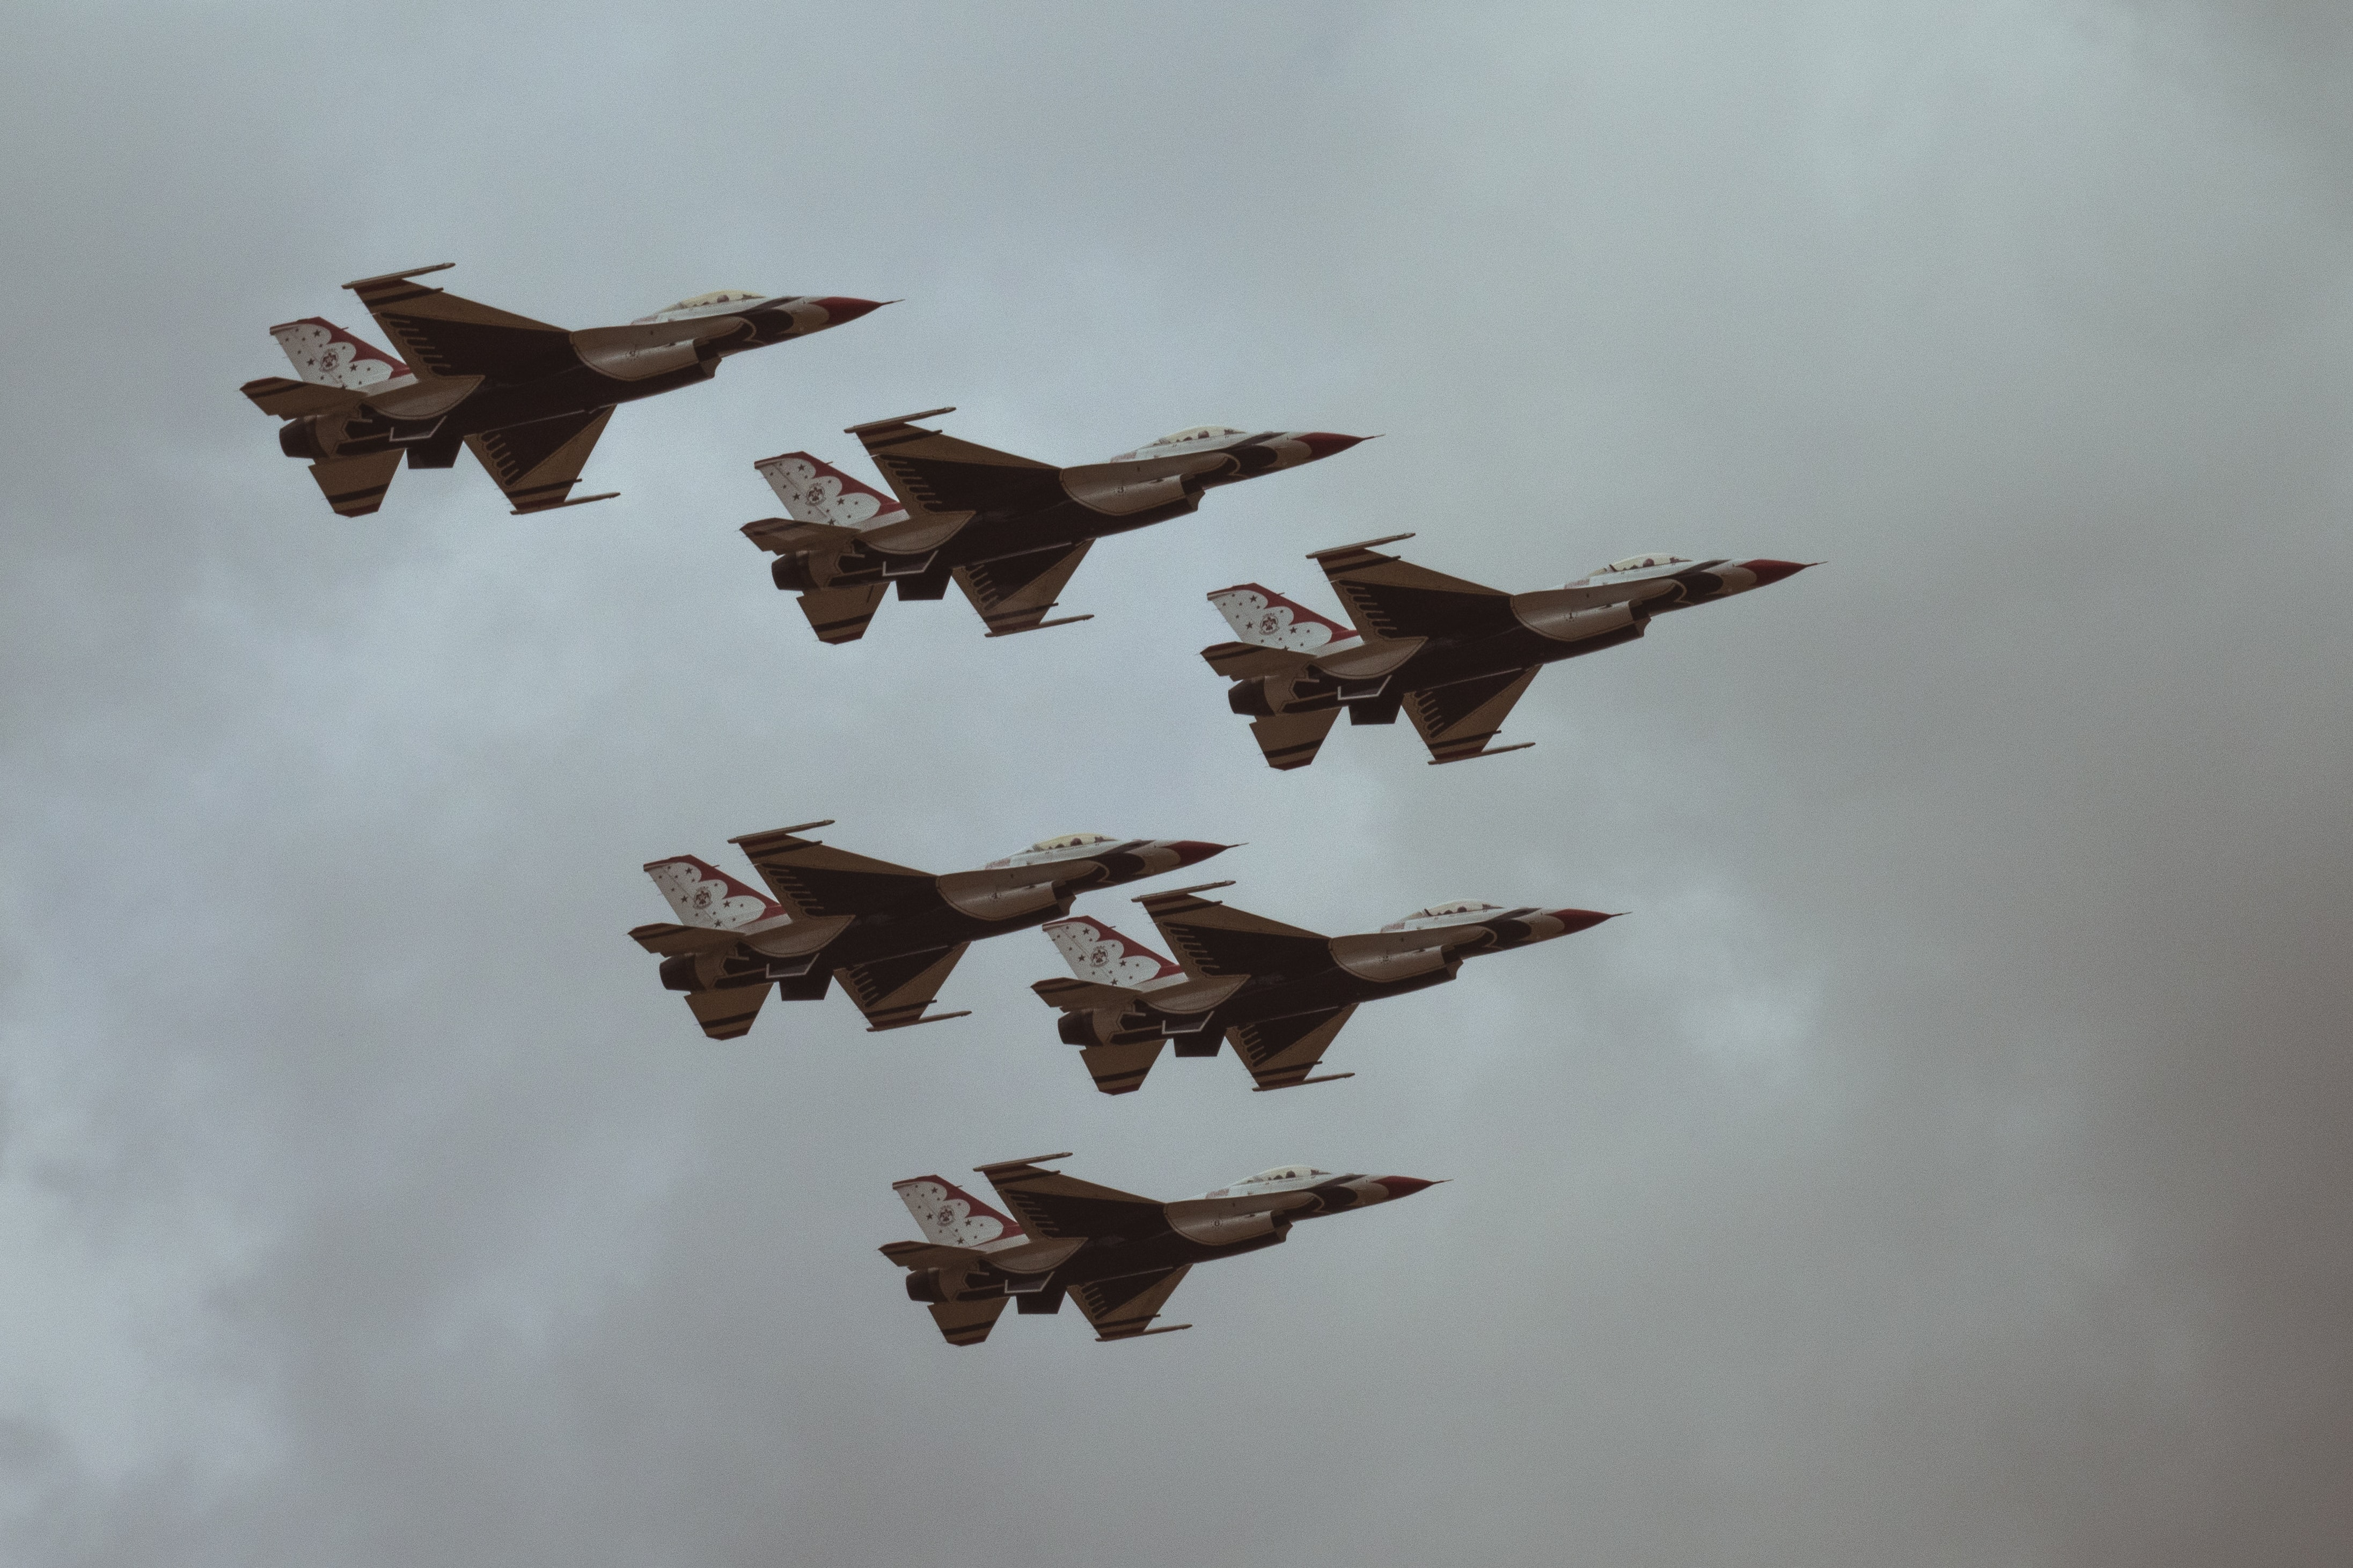 Six fighter jets flying in a formation against a cloudy sky